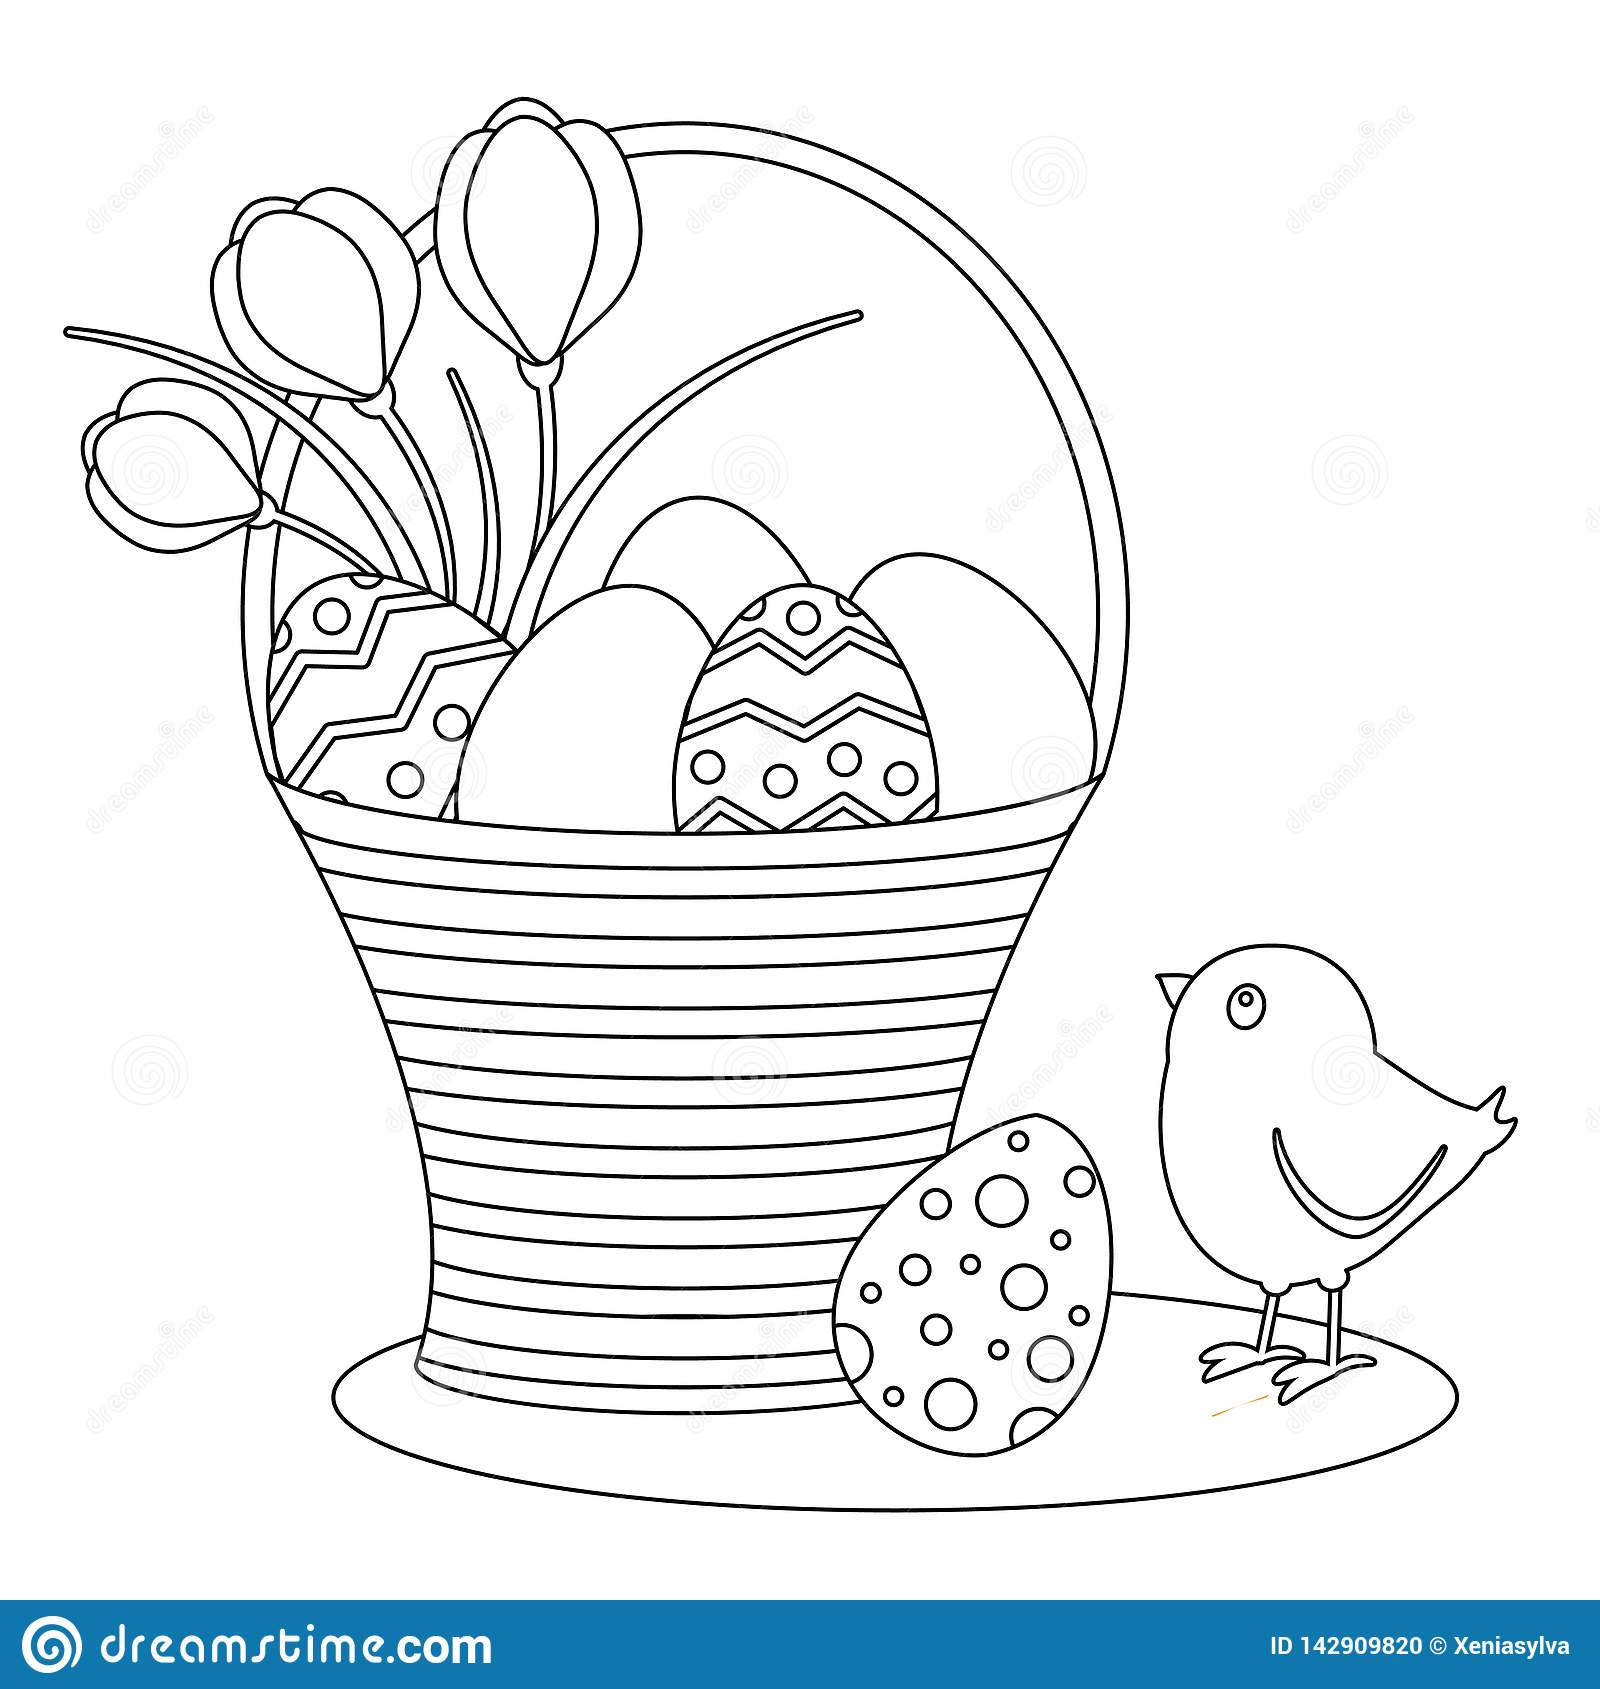 - Coloring Page With Cartoon Easter Eggs And Chick. Stock Vector